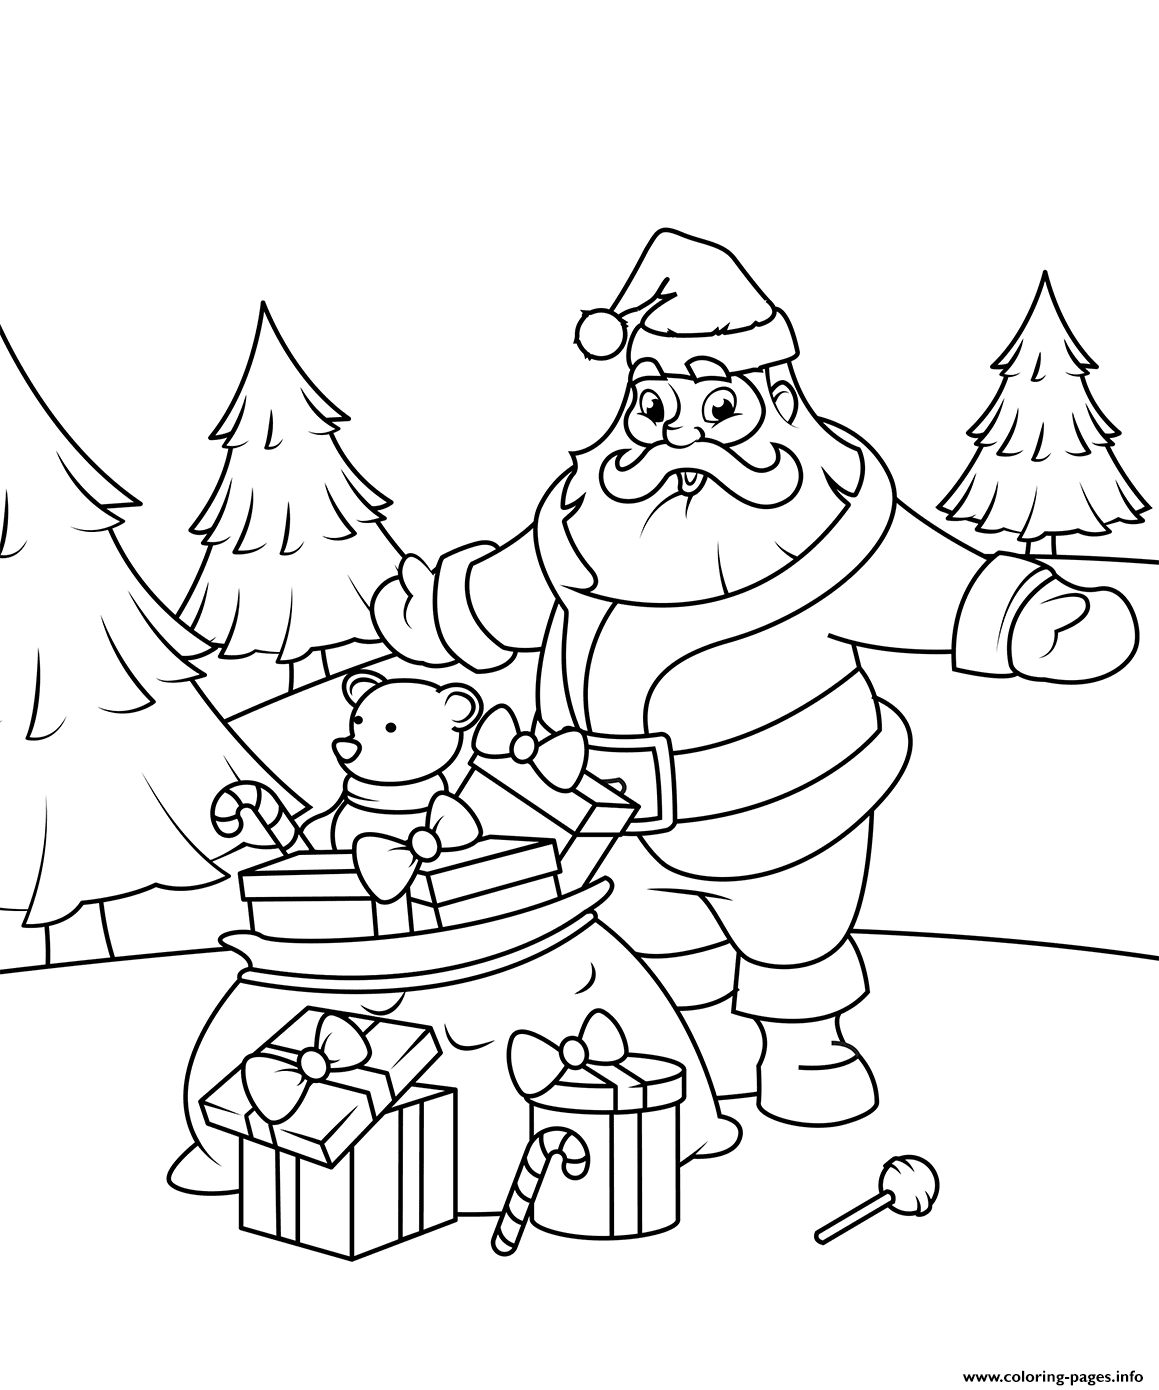 Pusheen Kleurplaat Kerst Santa Claus With Gifts Christmas Coloring Pages Printable